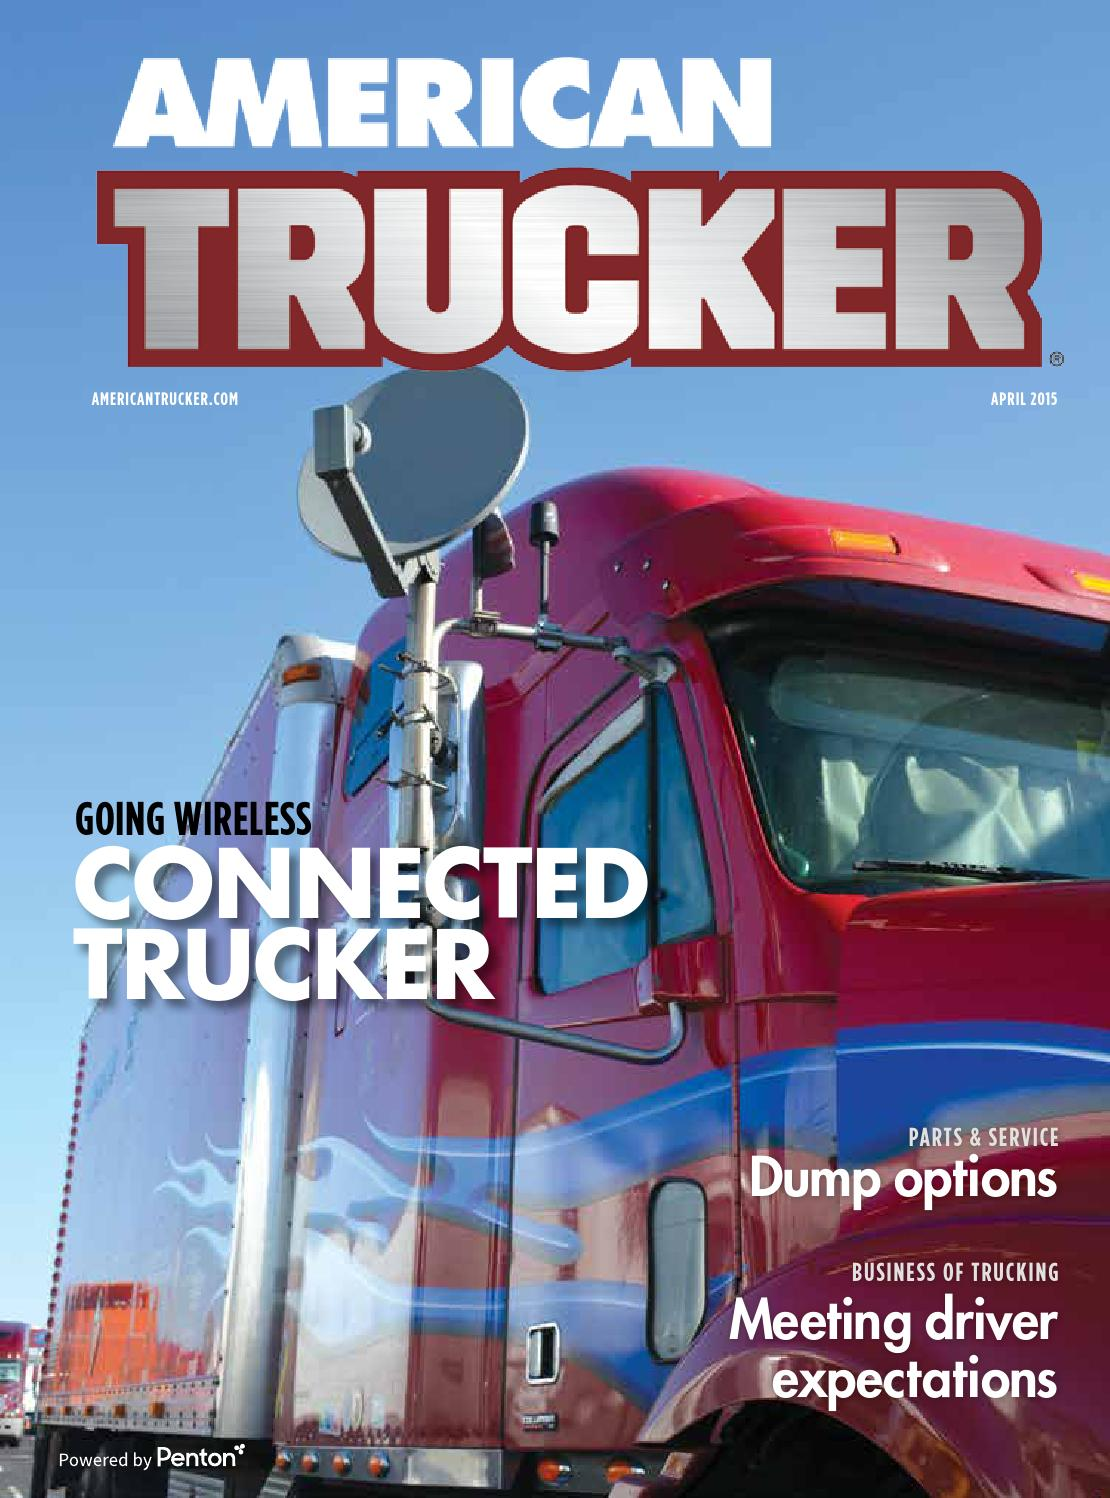 american trucker magazine - photo #12